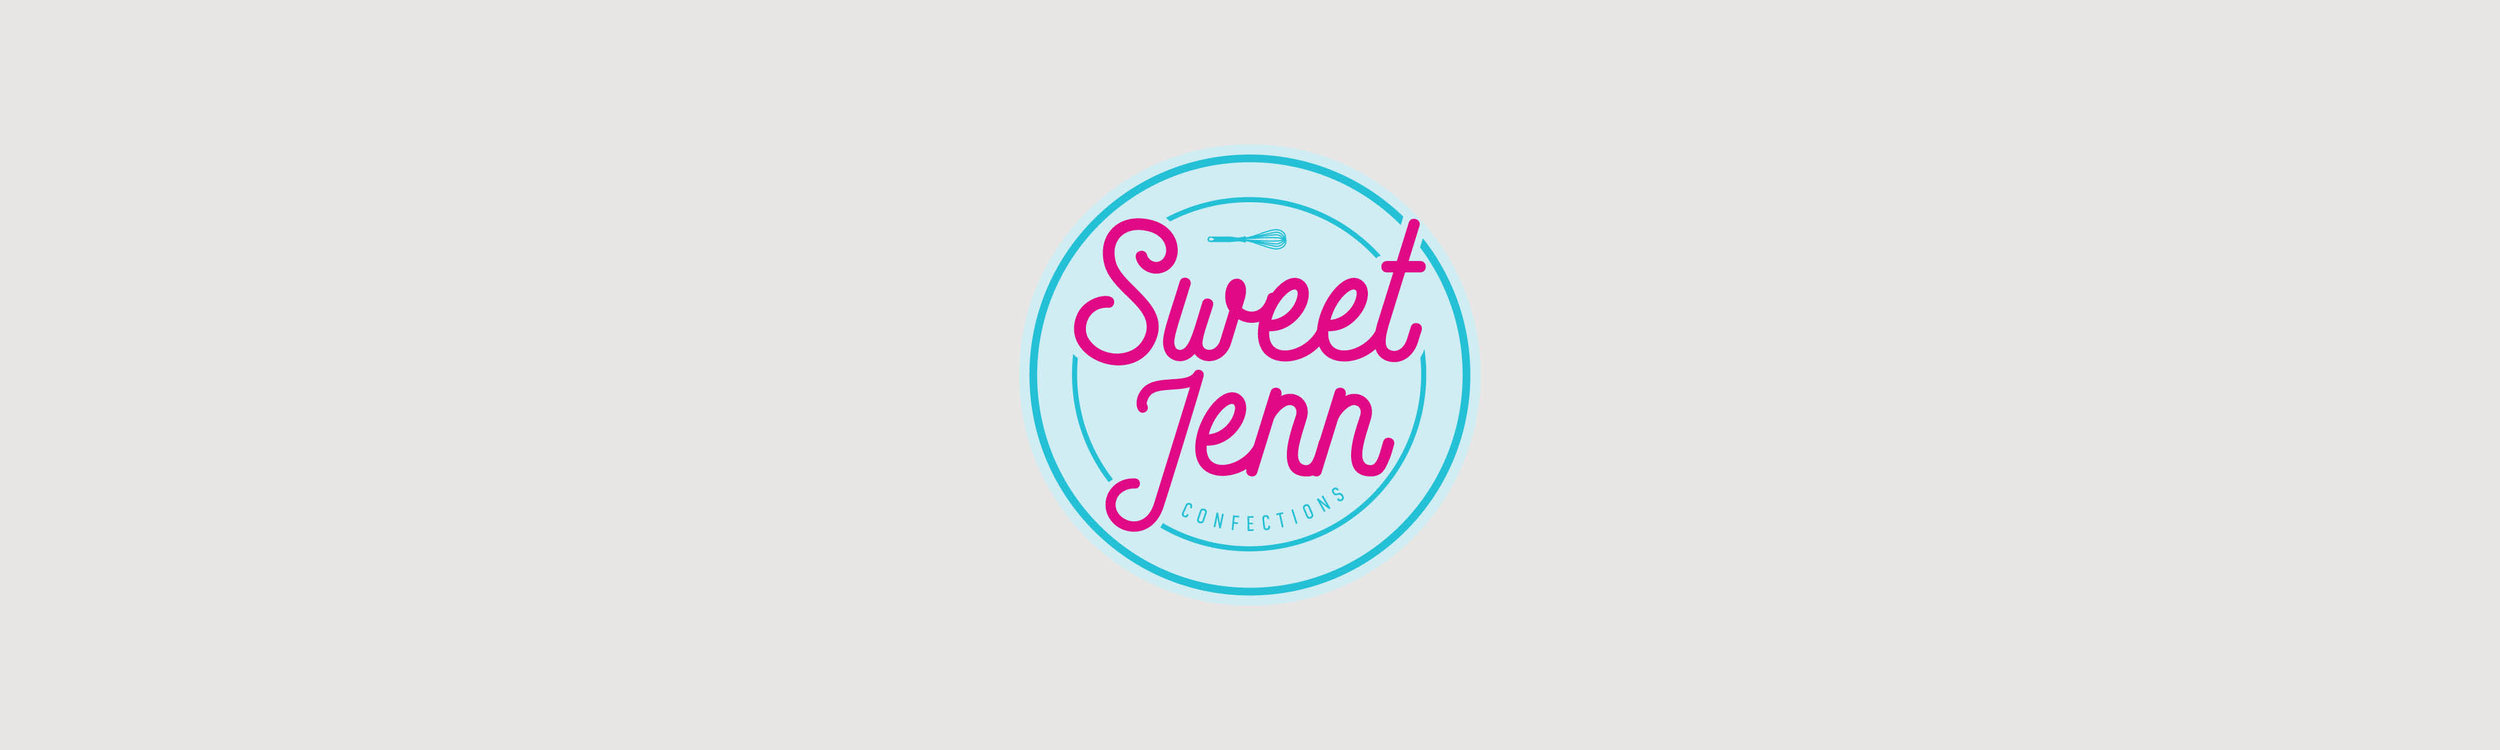 Sweet Jenn Confections branding by Casi Long Design | casilong.com 4.jpg